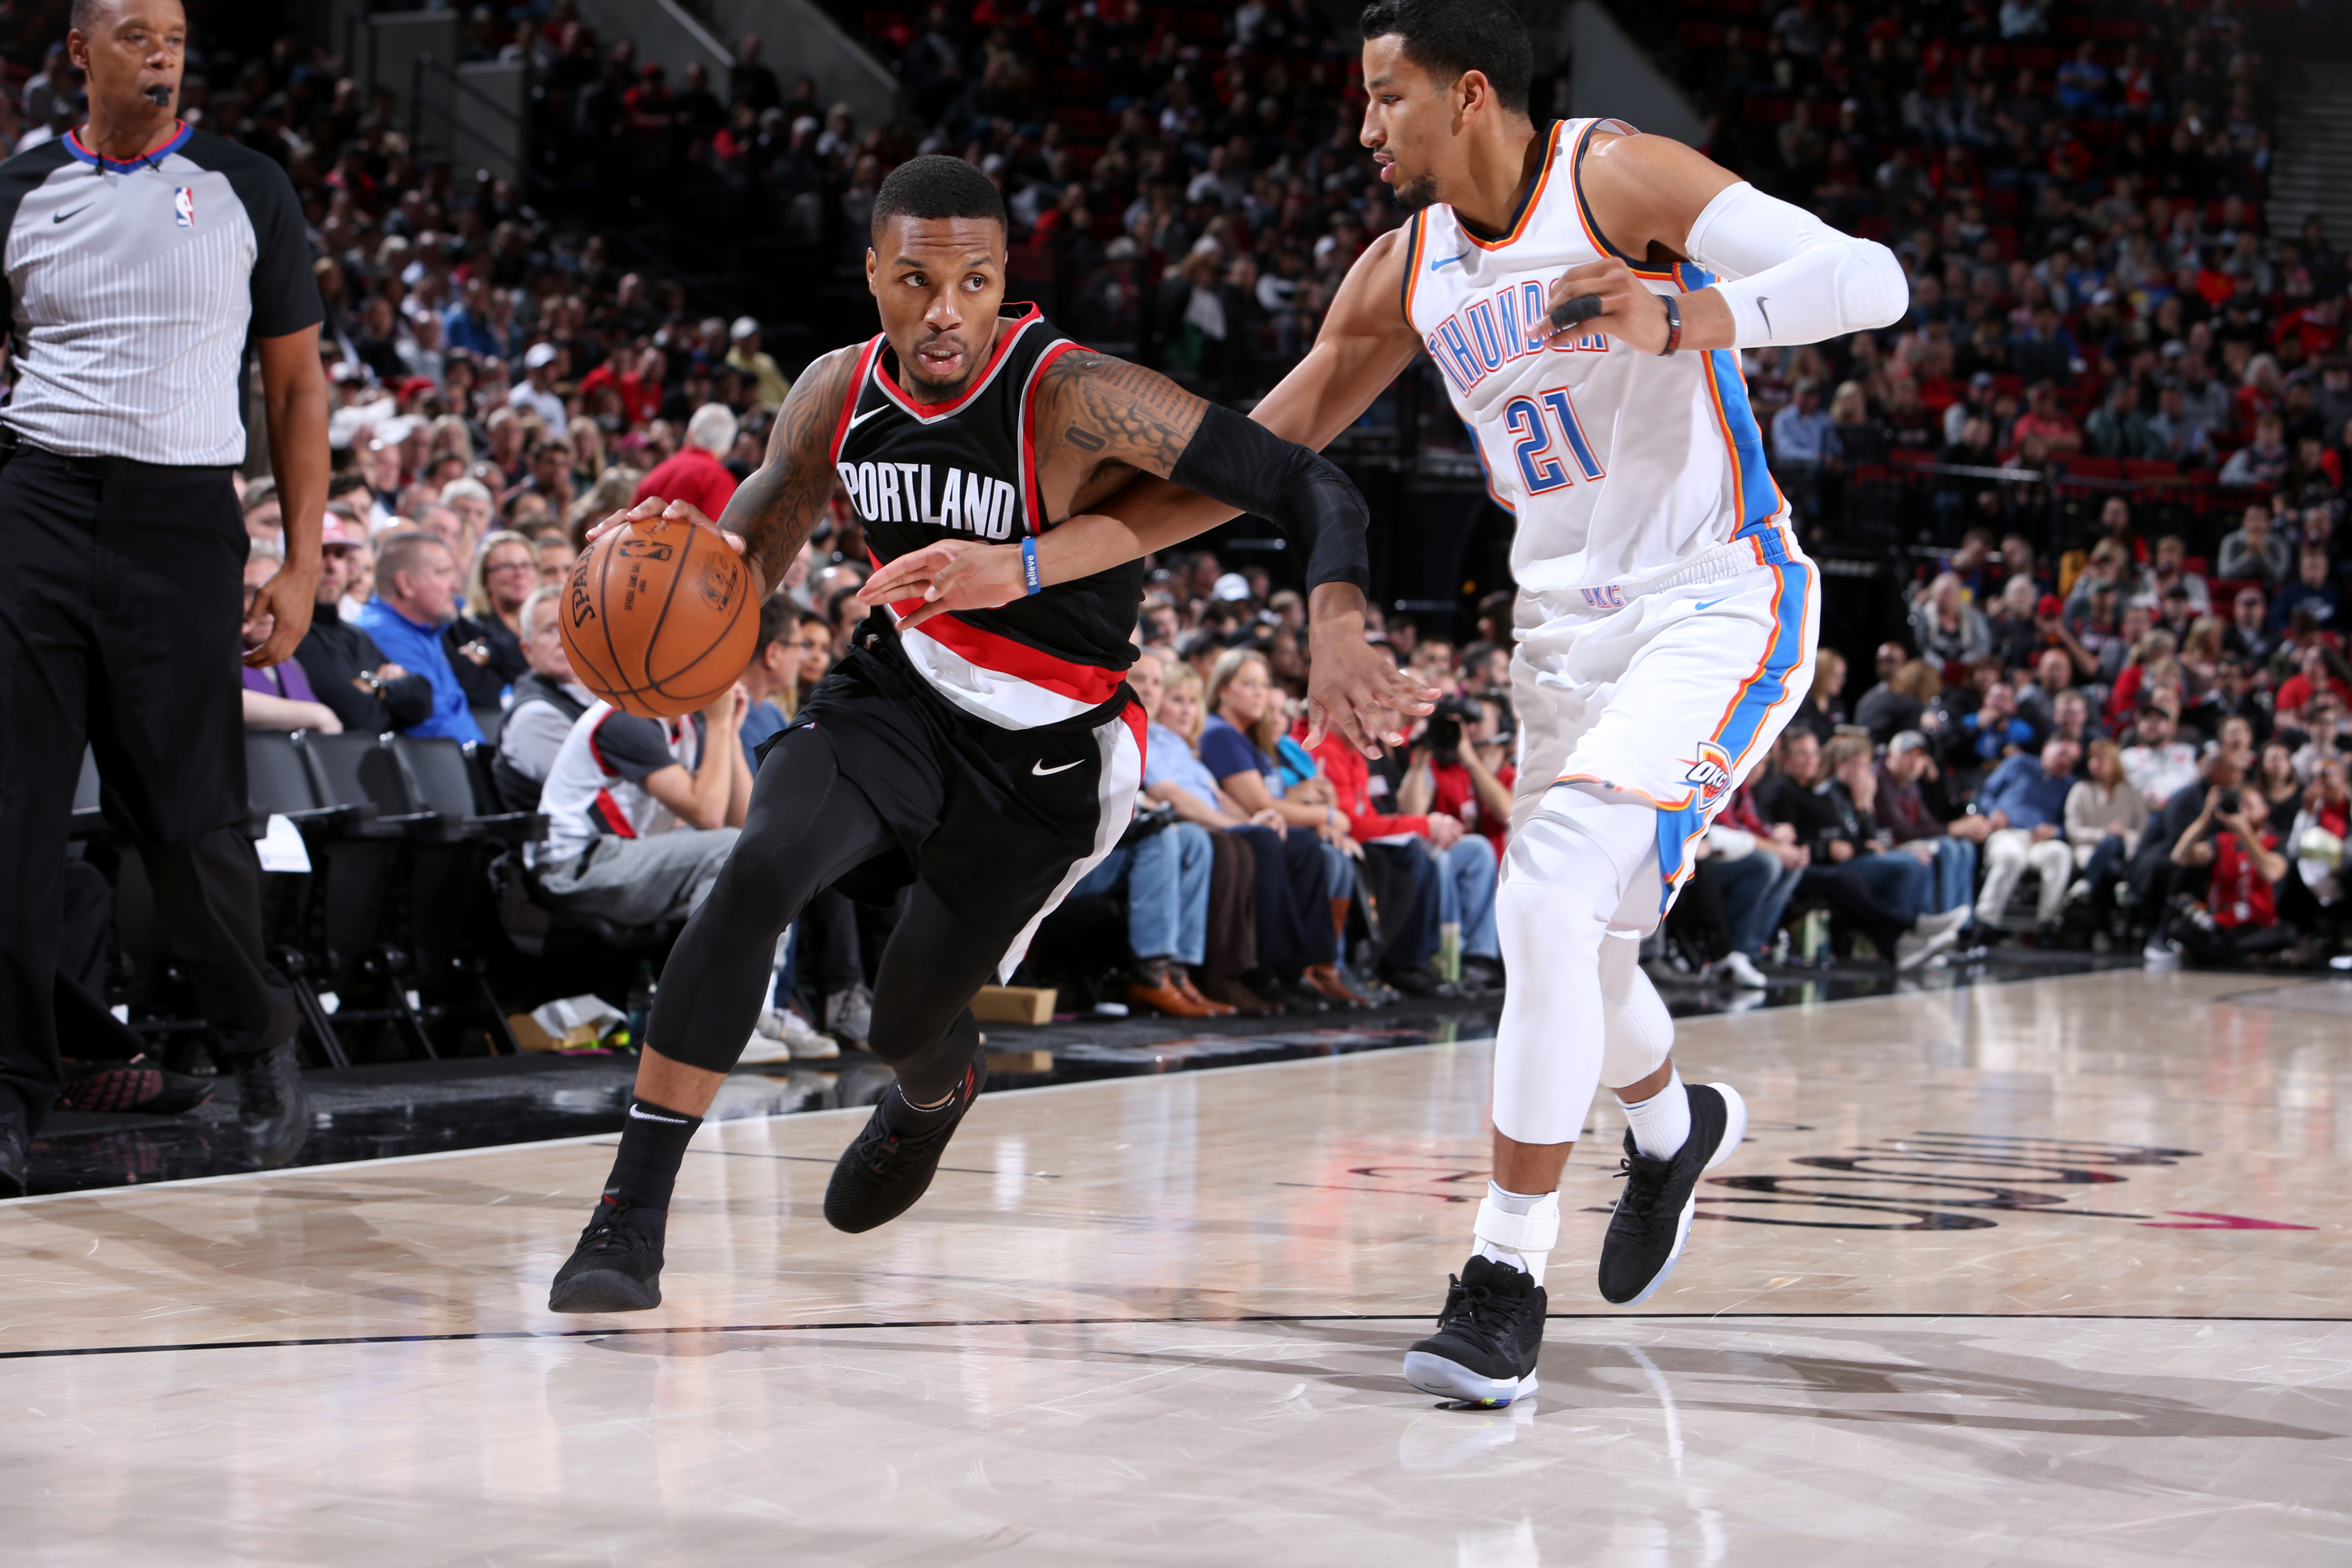 thunder vs trail blazers - photo #26